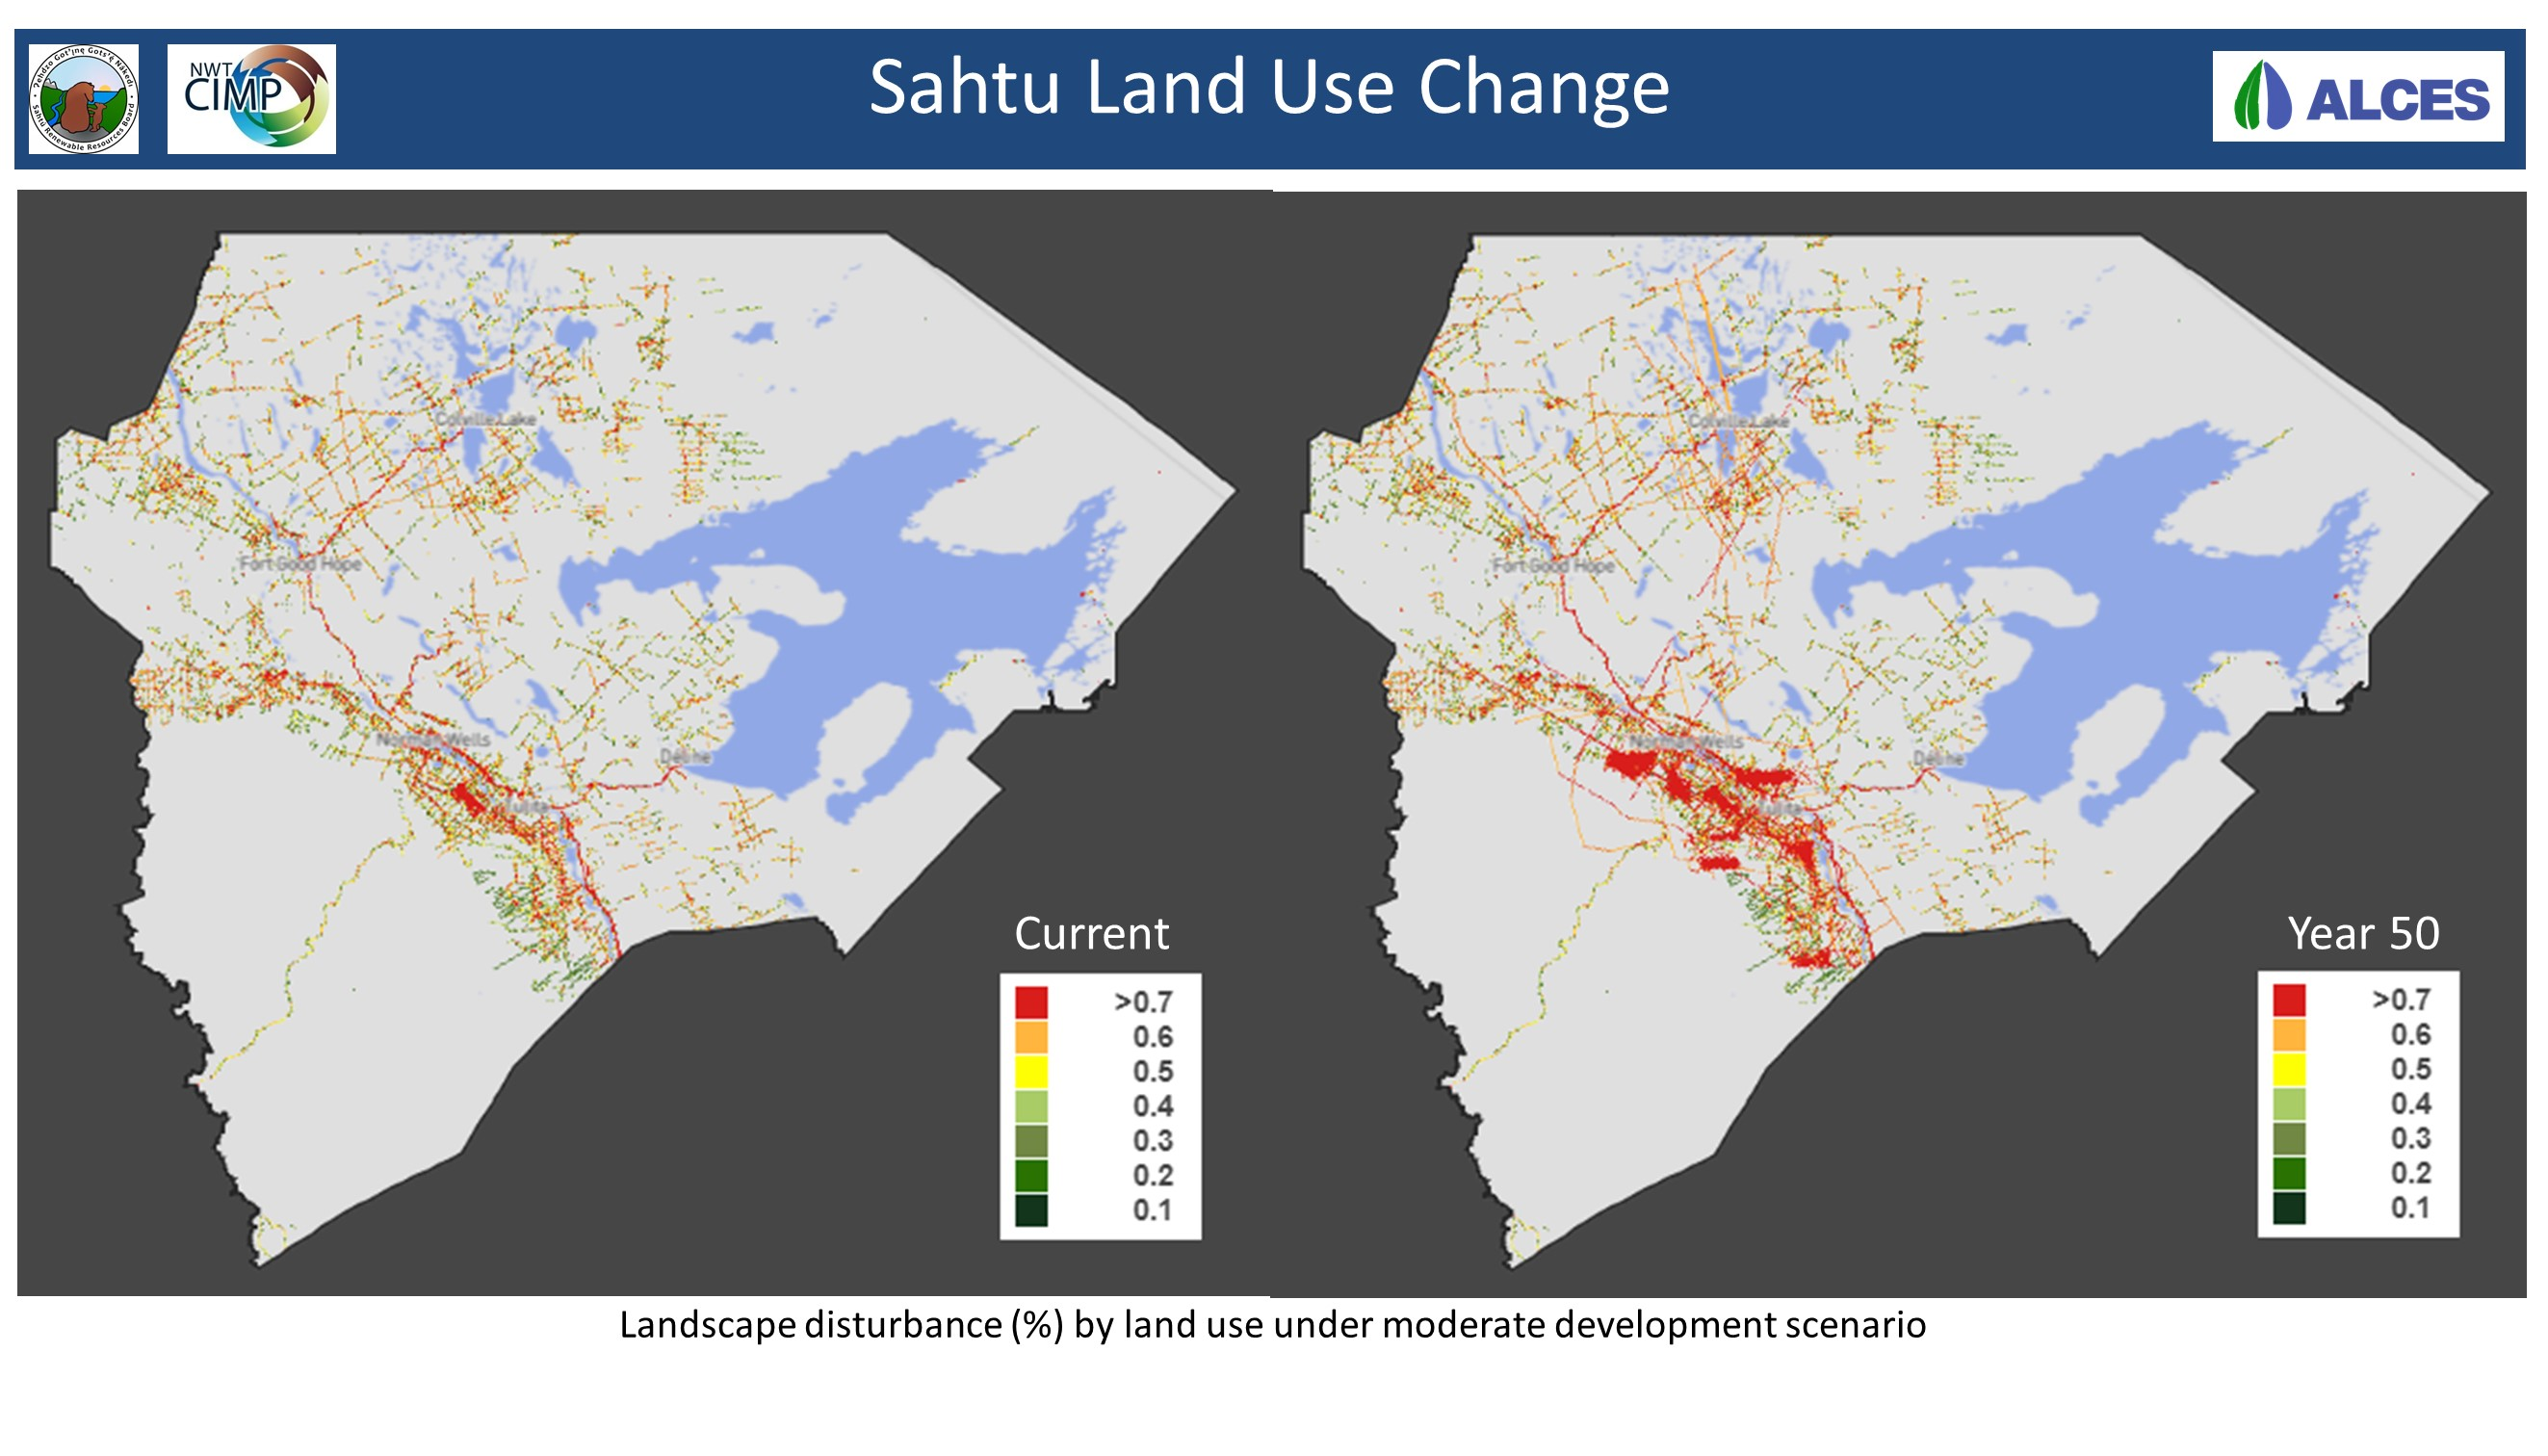 Sahtu Land Use Change